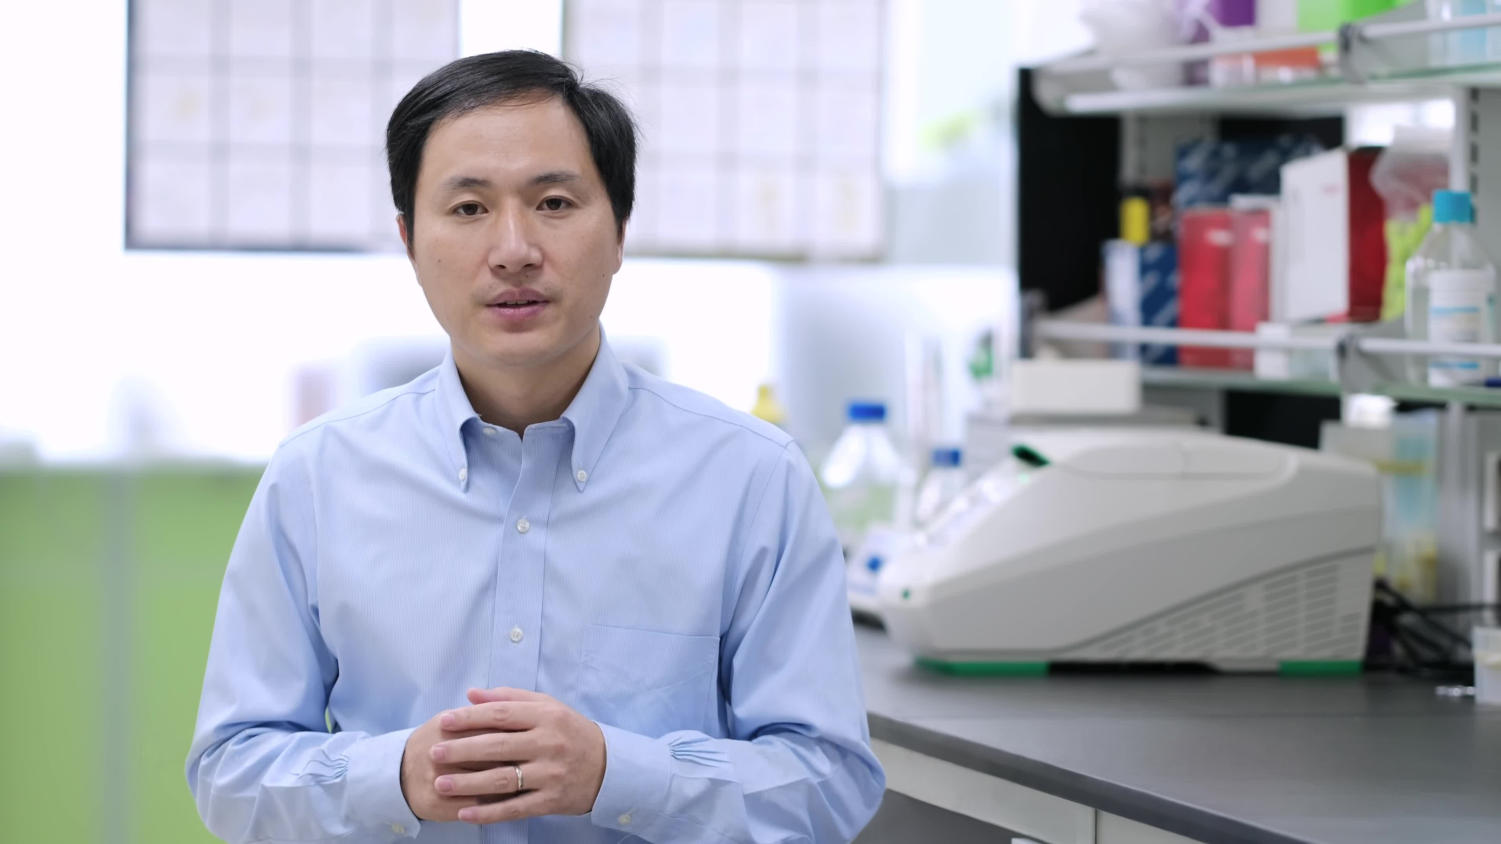 Chinese researcher He Jiankui in his lab. Labeled for reuse by 维基百科.